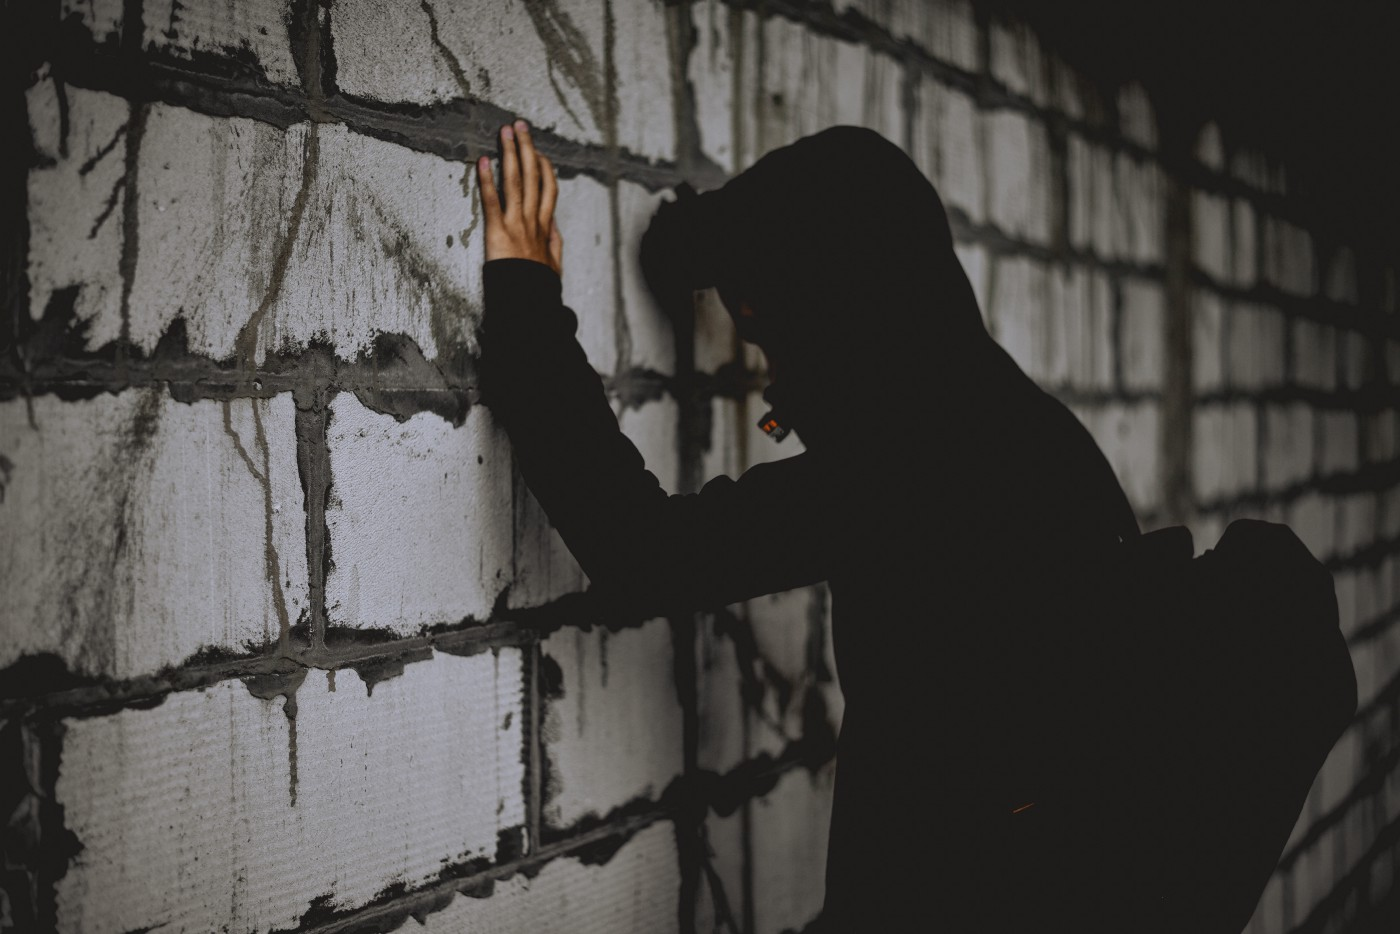 A man stands with his head facing a wall